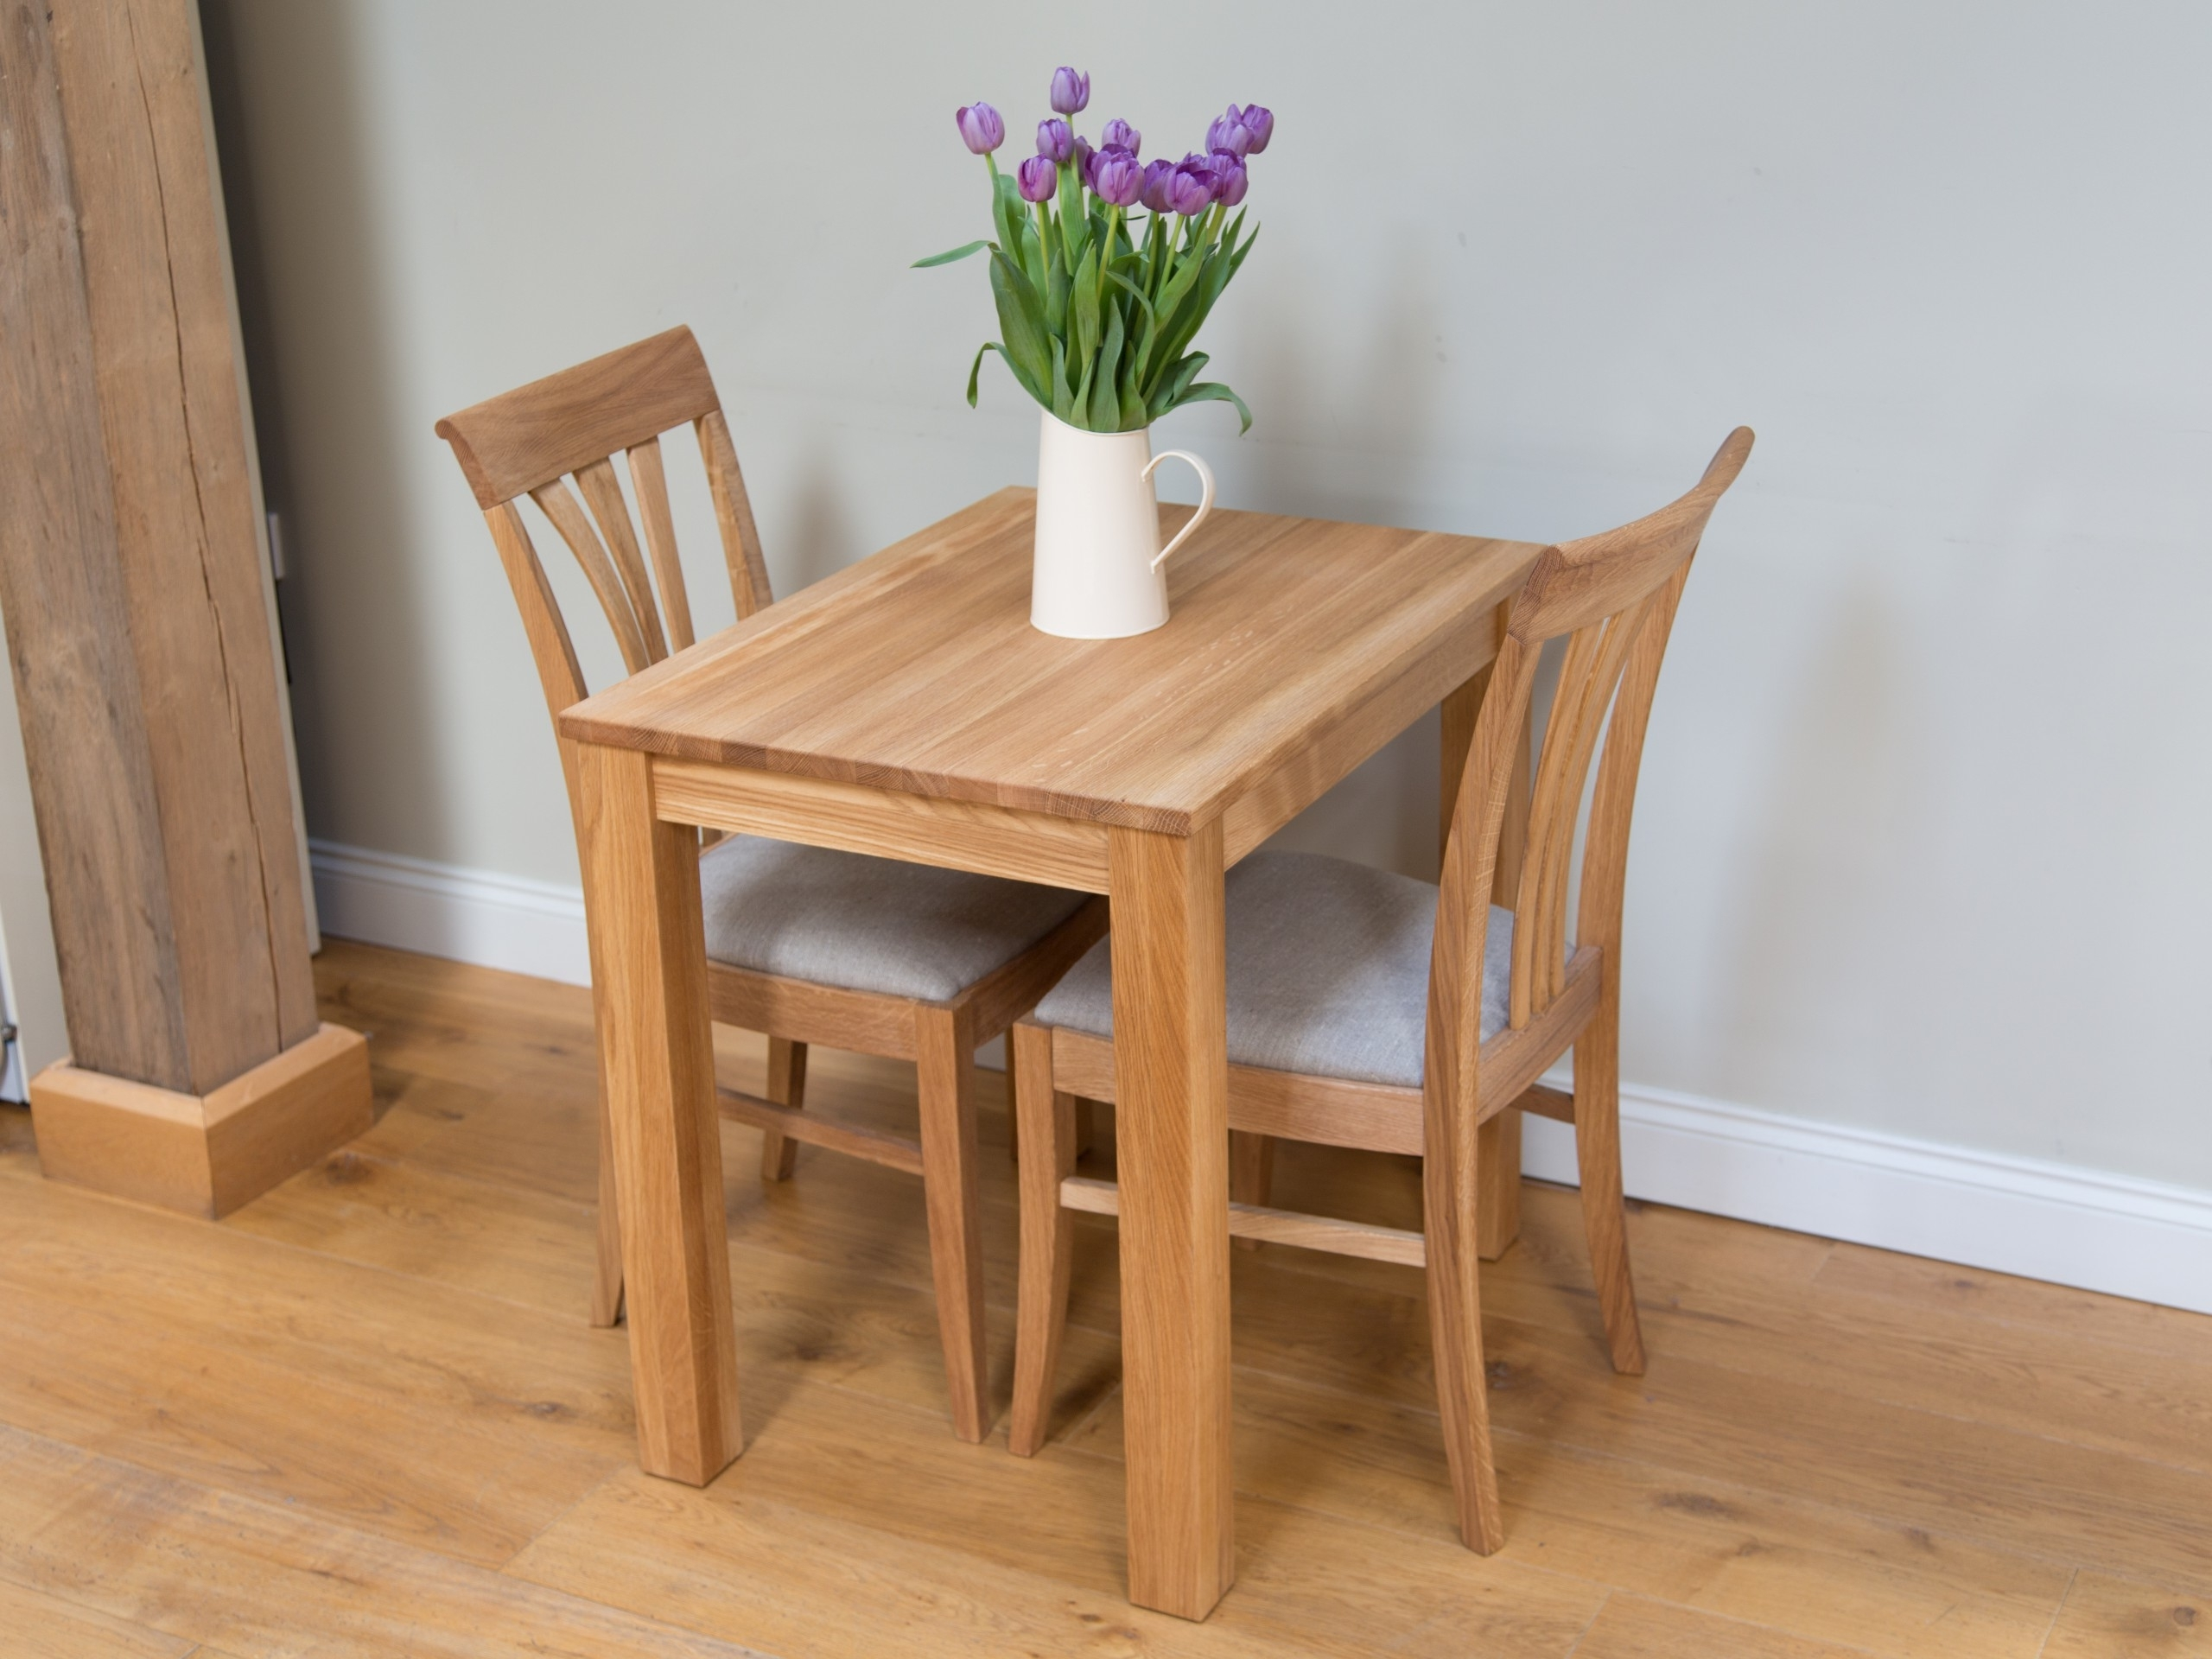 Preferred Oak Kitchen Table Chair Dining Set From Top Furniture, At A Table For Two Seat Dining Tables (Gallery 6 of 25)